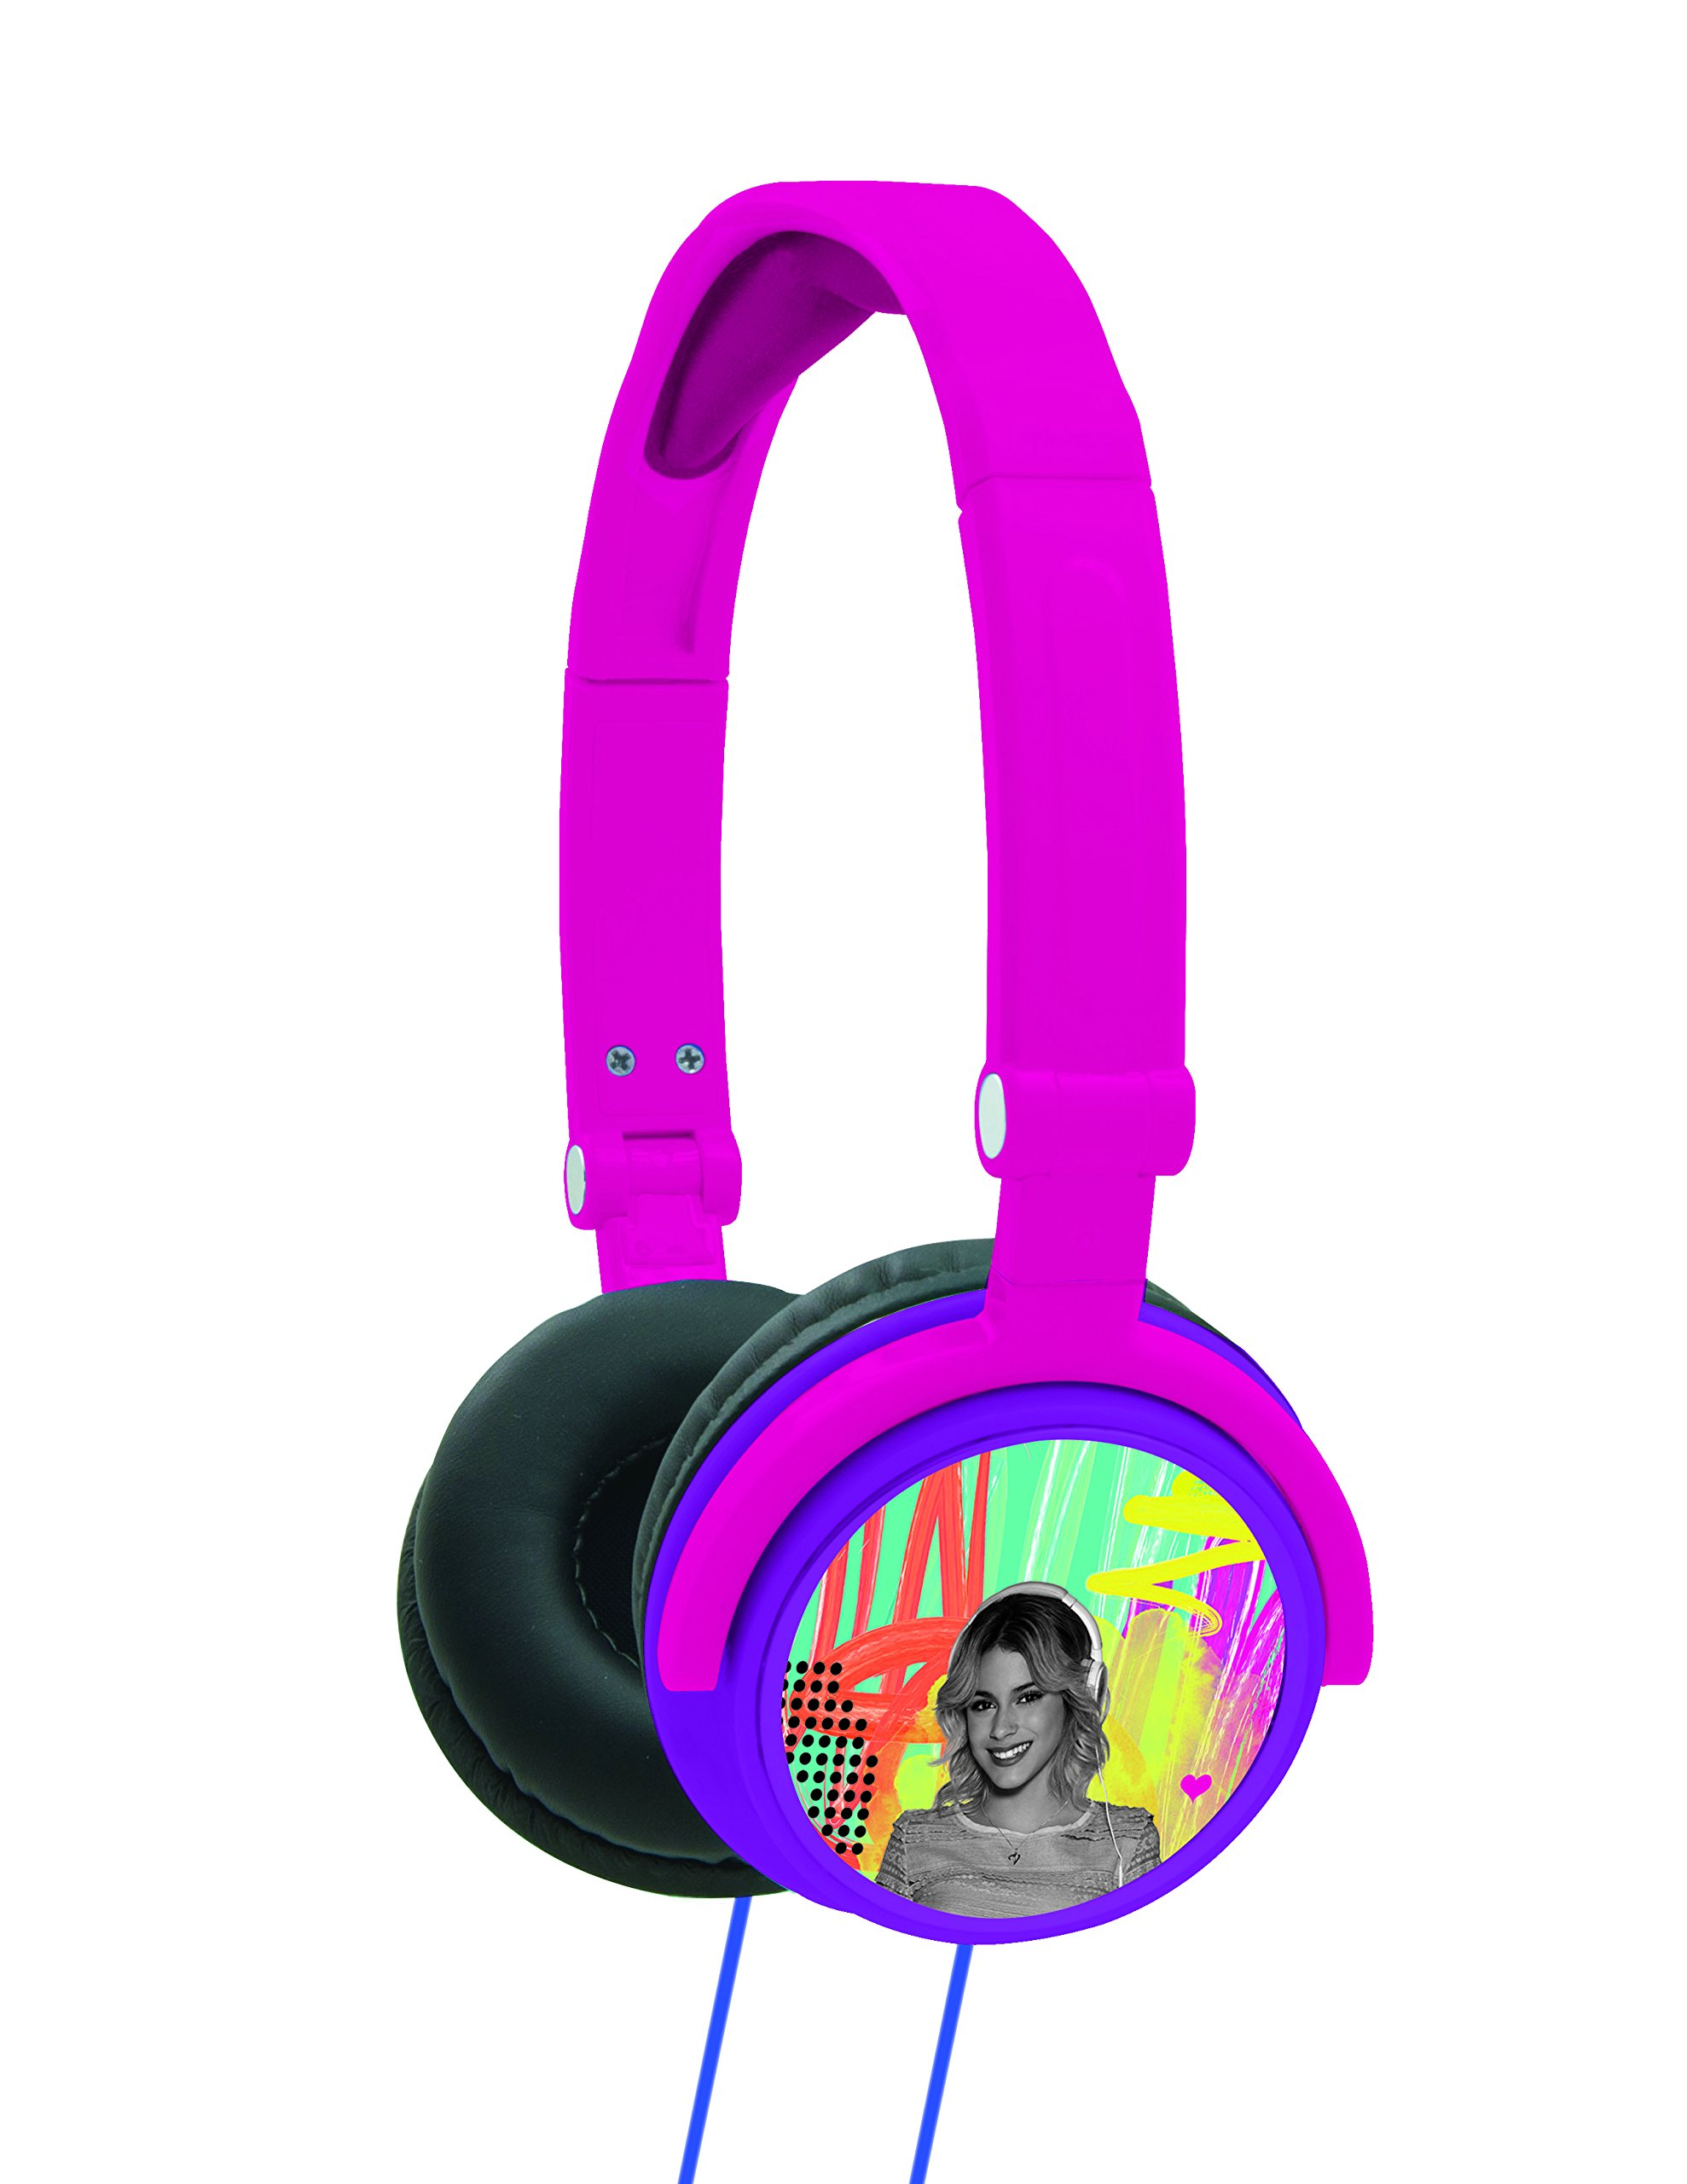 LEXiBOOK Disney Violetta Stereo Headphone, Kids Safe, Foldable and Adjustable, Pink / Purple, HP010VI by LEXiBOOK (Image #1)